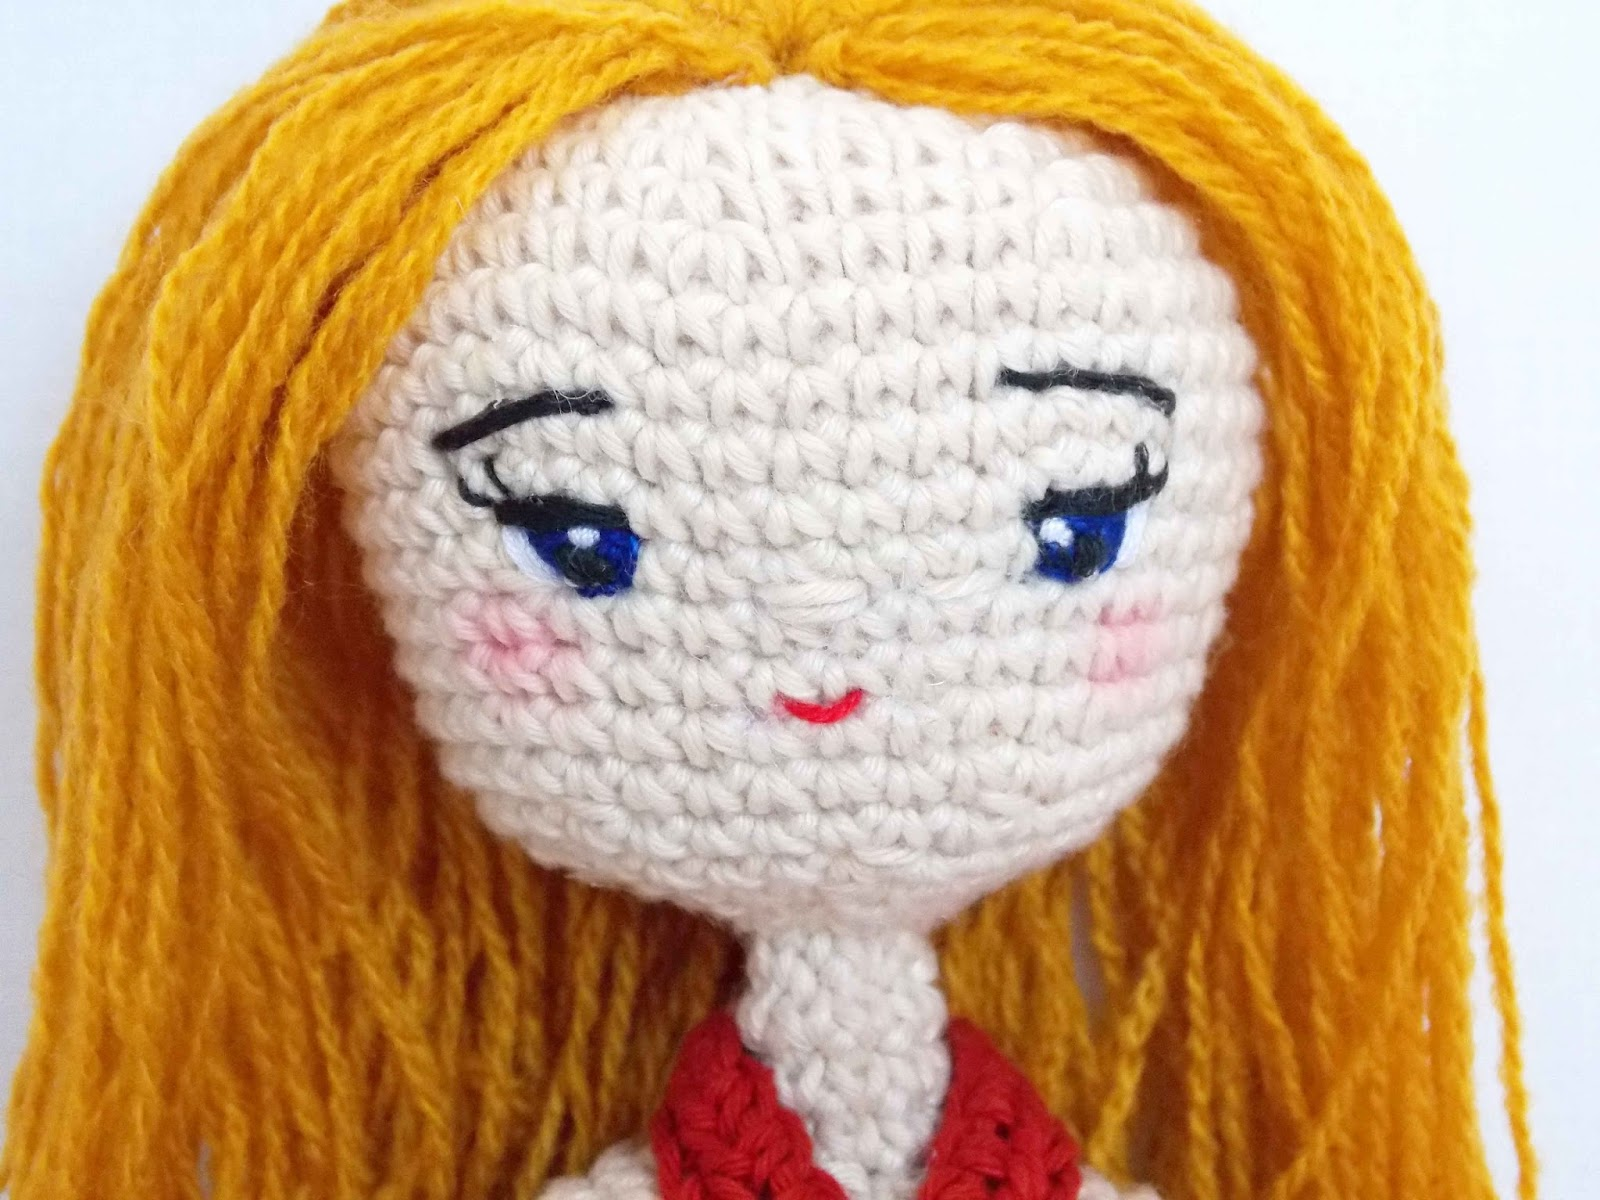 Glinting Eyes for Amigurumi | PlanetJune by June Gilbank: Blog | 1200x1600